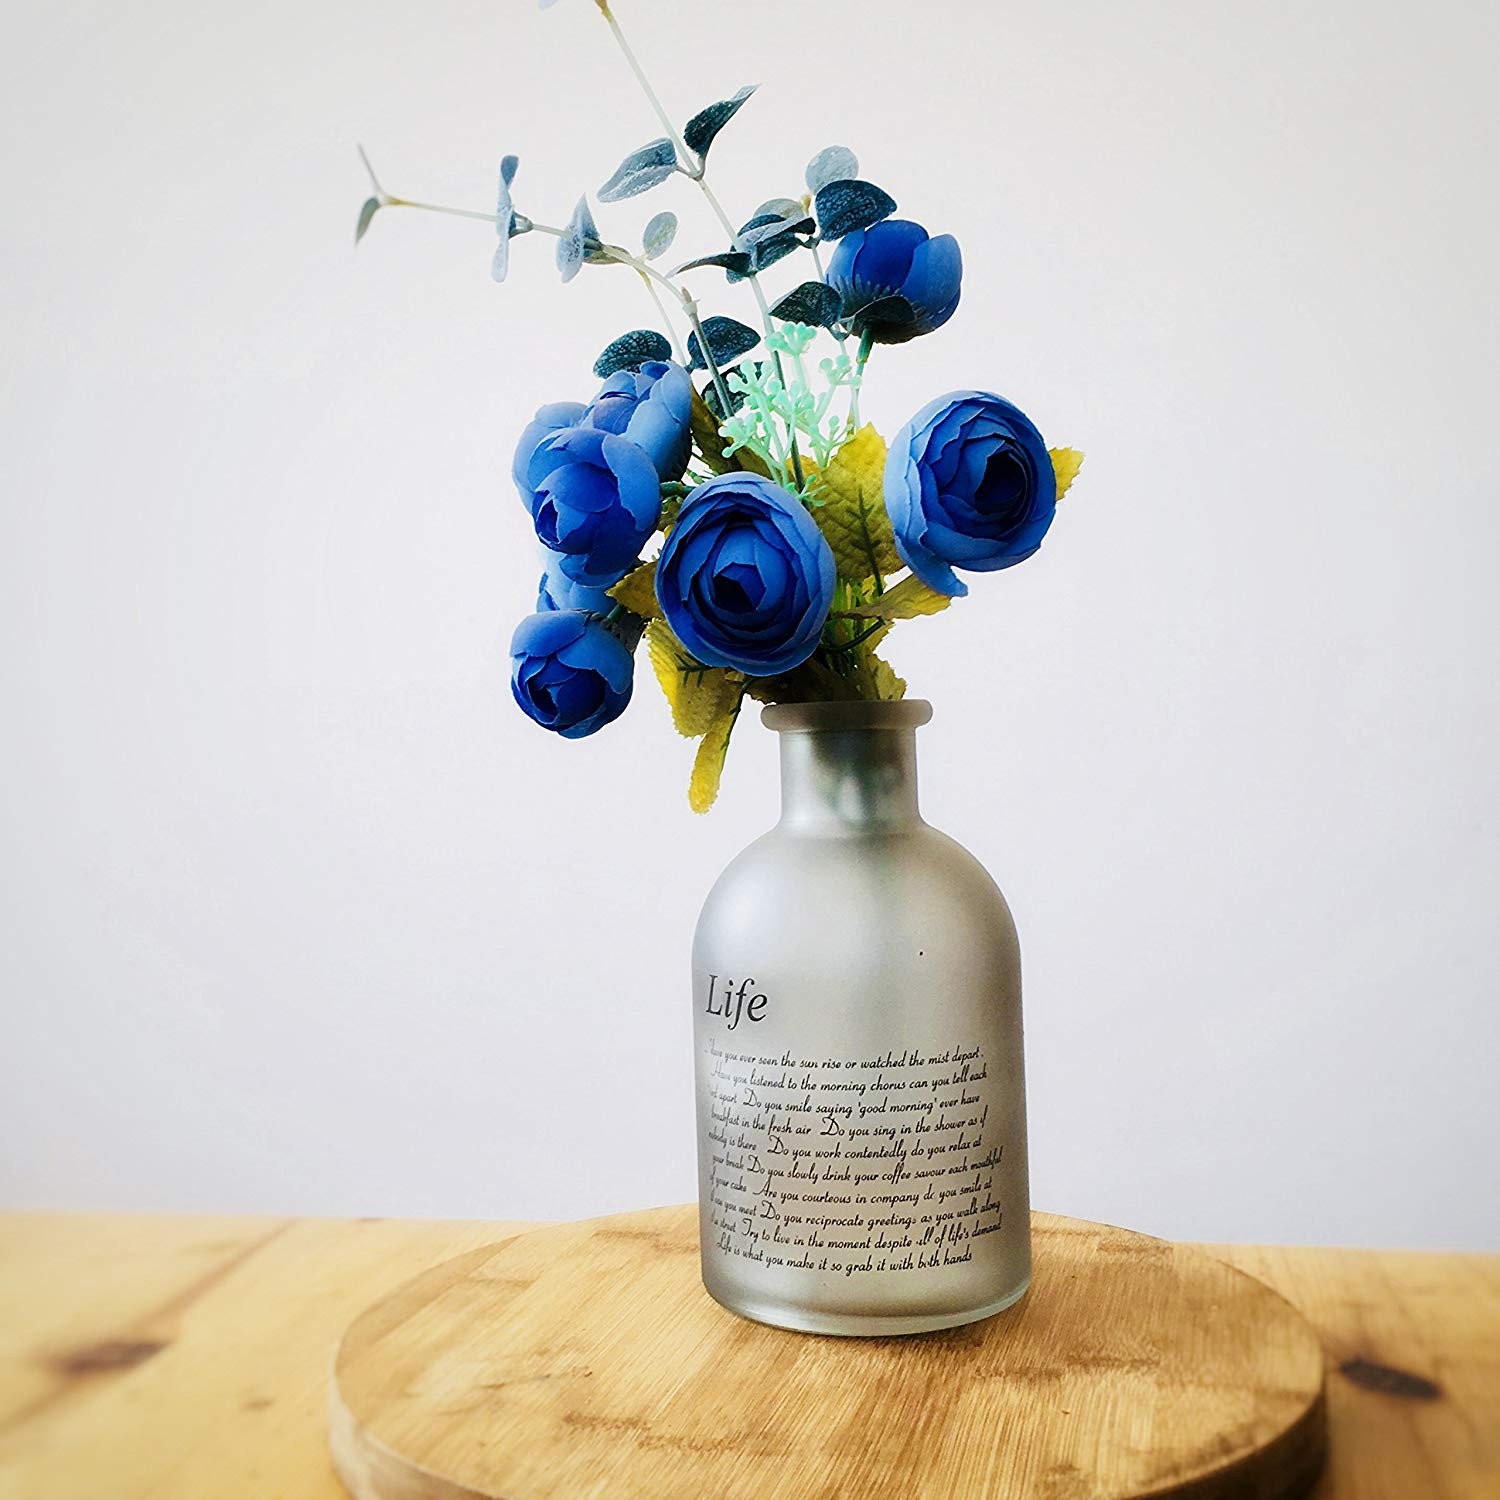 13 Best Small Glass Milk Bottle Vases 2021 free download small glass milk bottle vases of amazon com flowersea decorative frosted glass bottle bud vases for with regard to amazon com flowersea decorative frosted glass bottle bud vases for flowers